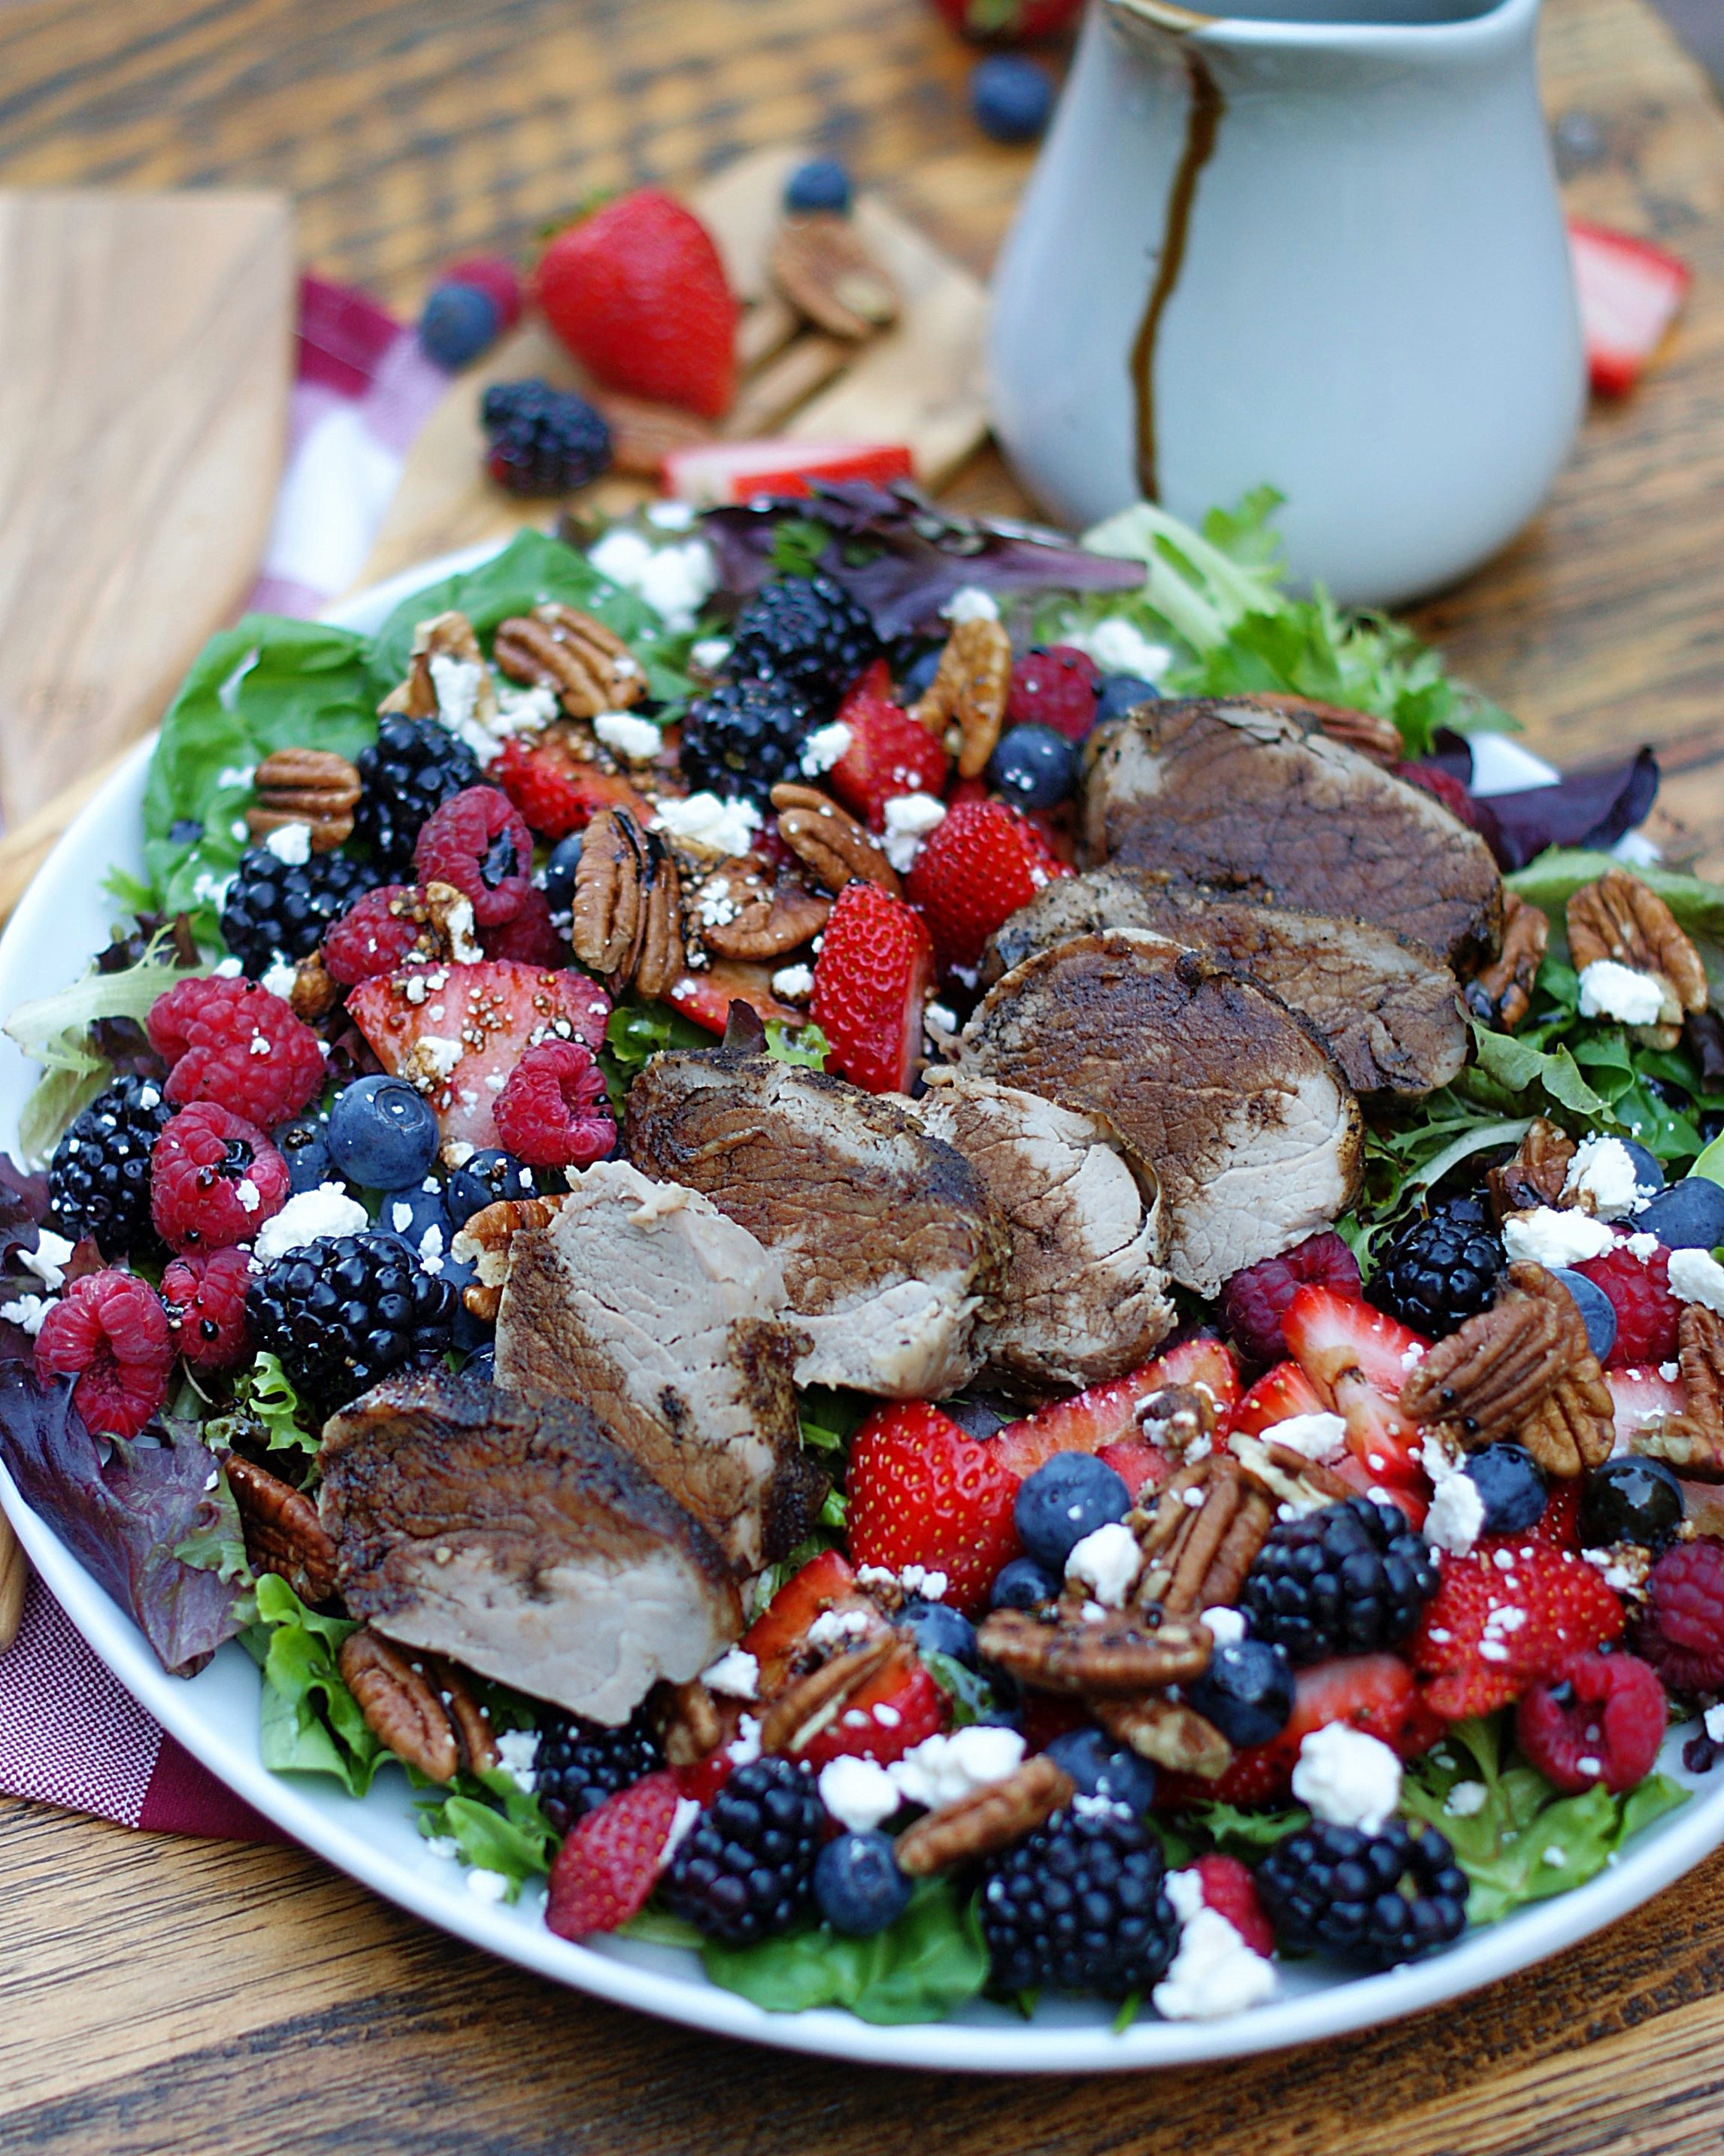 Berry Salad with balsamic dressing drizzled all around and peppered pork tenderloin.